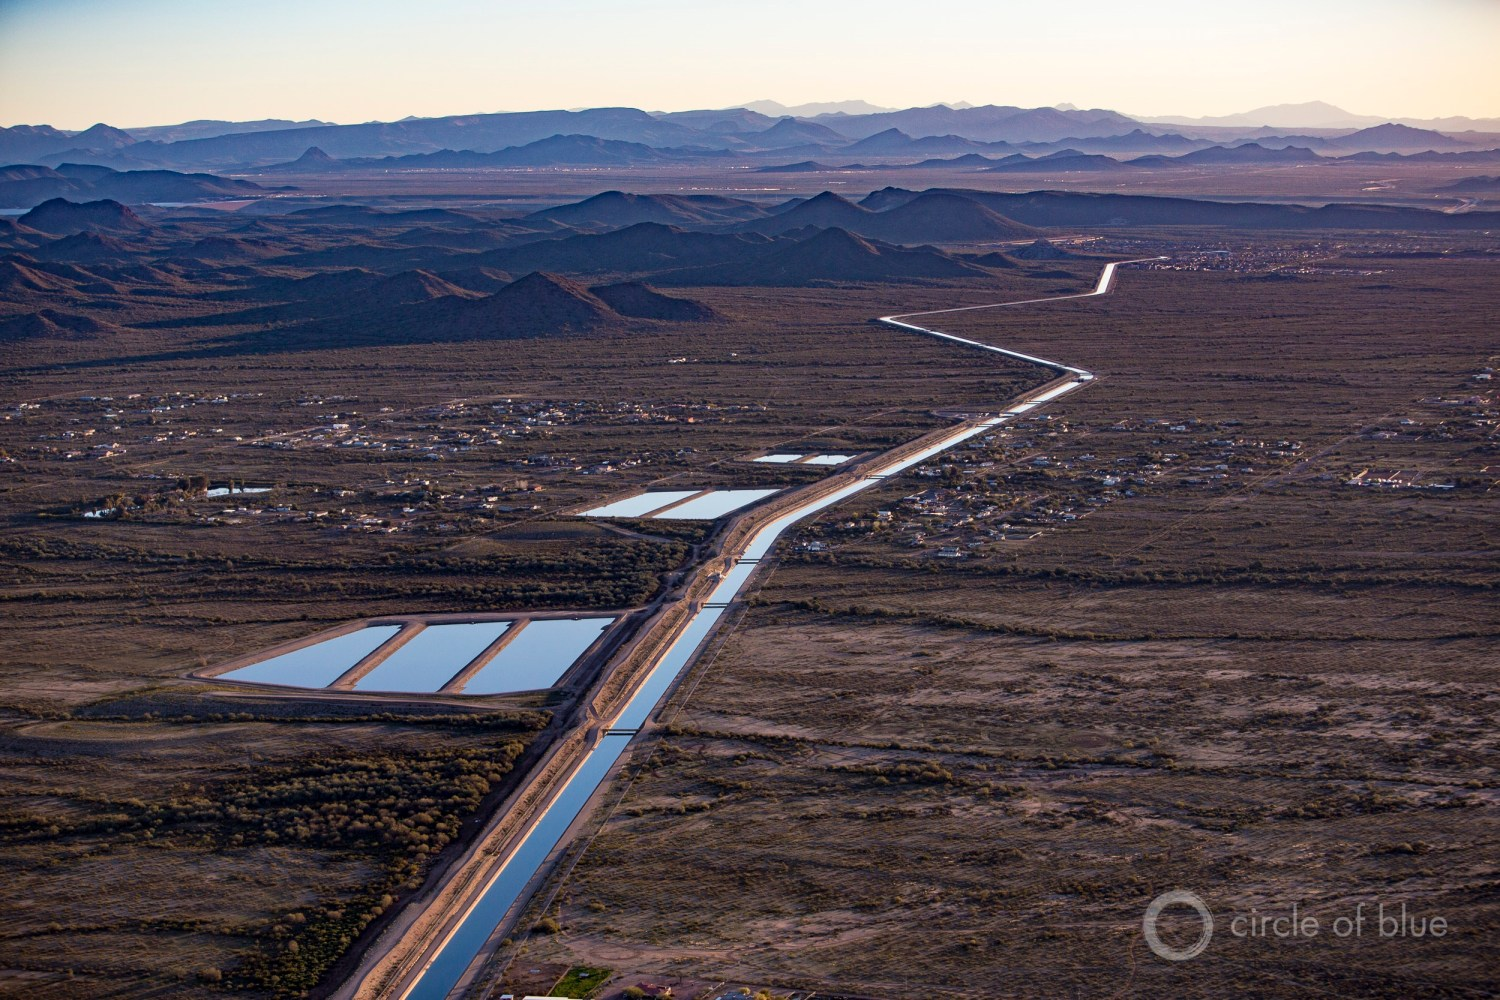 The Central Arizona Project canal snakes 336 miles across the desert to deliver water to three counties in the heart of the state. Photo © J. Carl Ganter / Circle of Blue